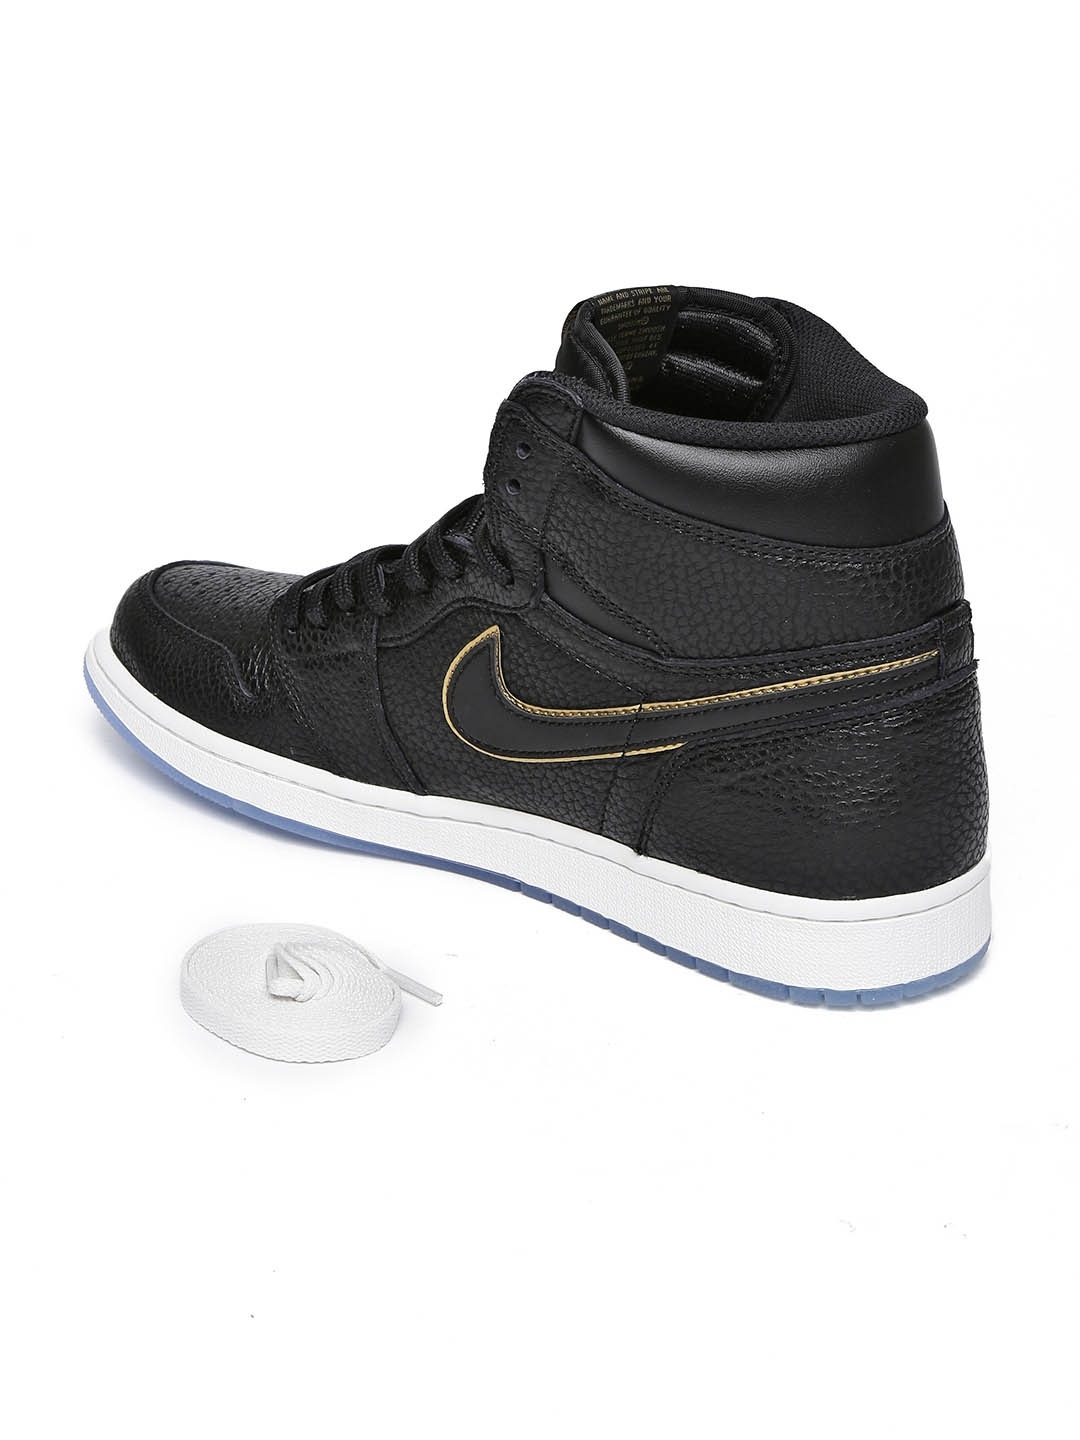 low priced 1d2fa eb40c Nike Men Black Leather High-Top AIR JORDAN 1 RETRO Basketball Shoes